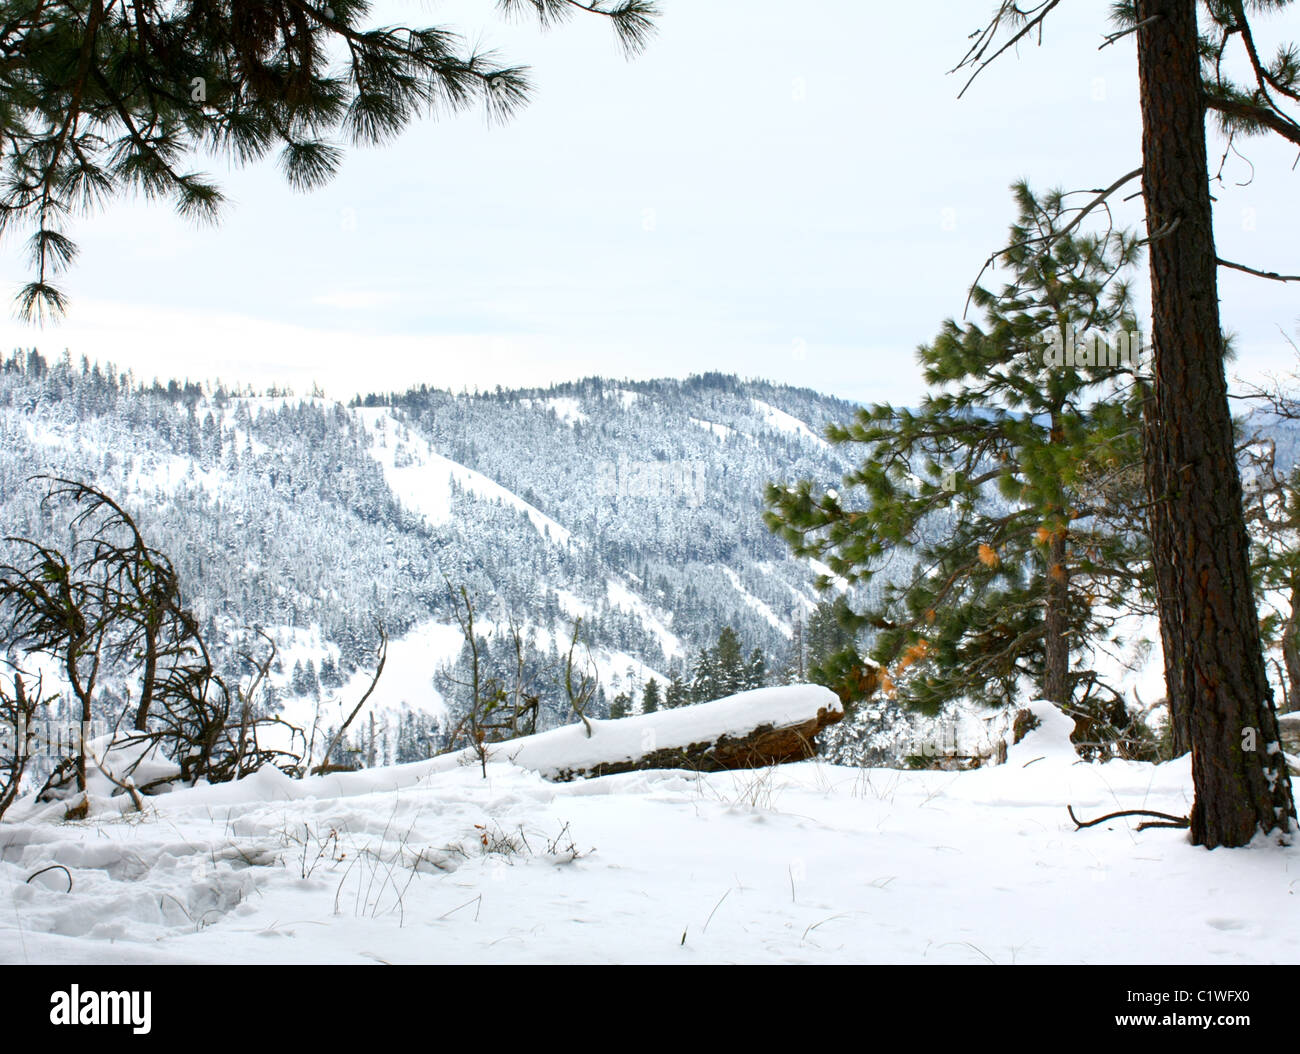 40,600.03176 A fresh winter snow covers dead log and the green ponderosa pine forest that is scattered over a deep - Stock Image